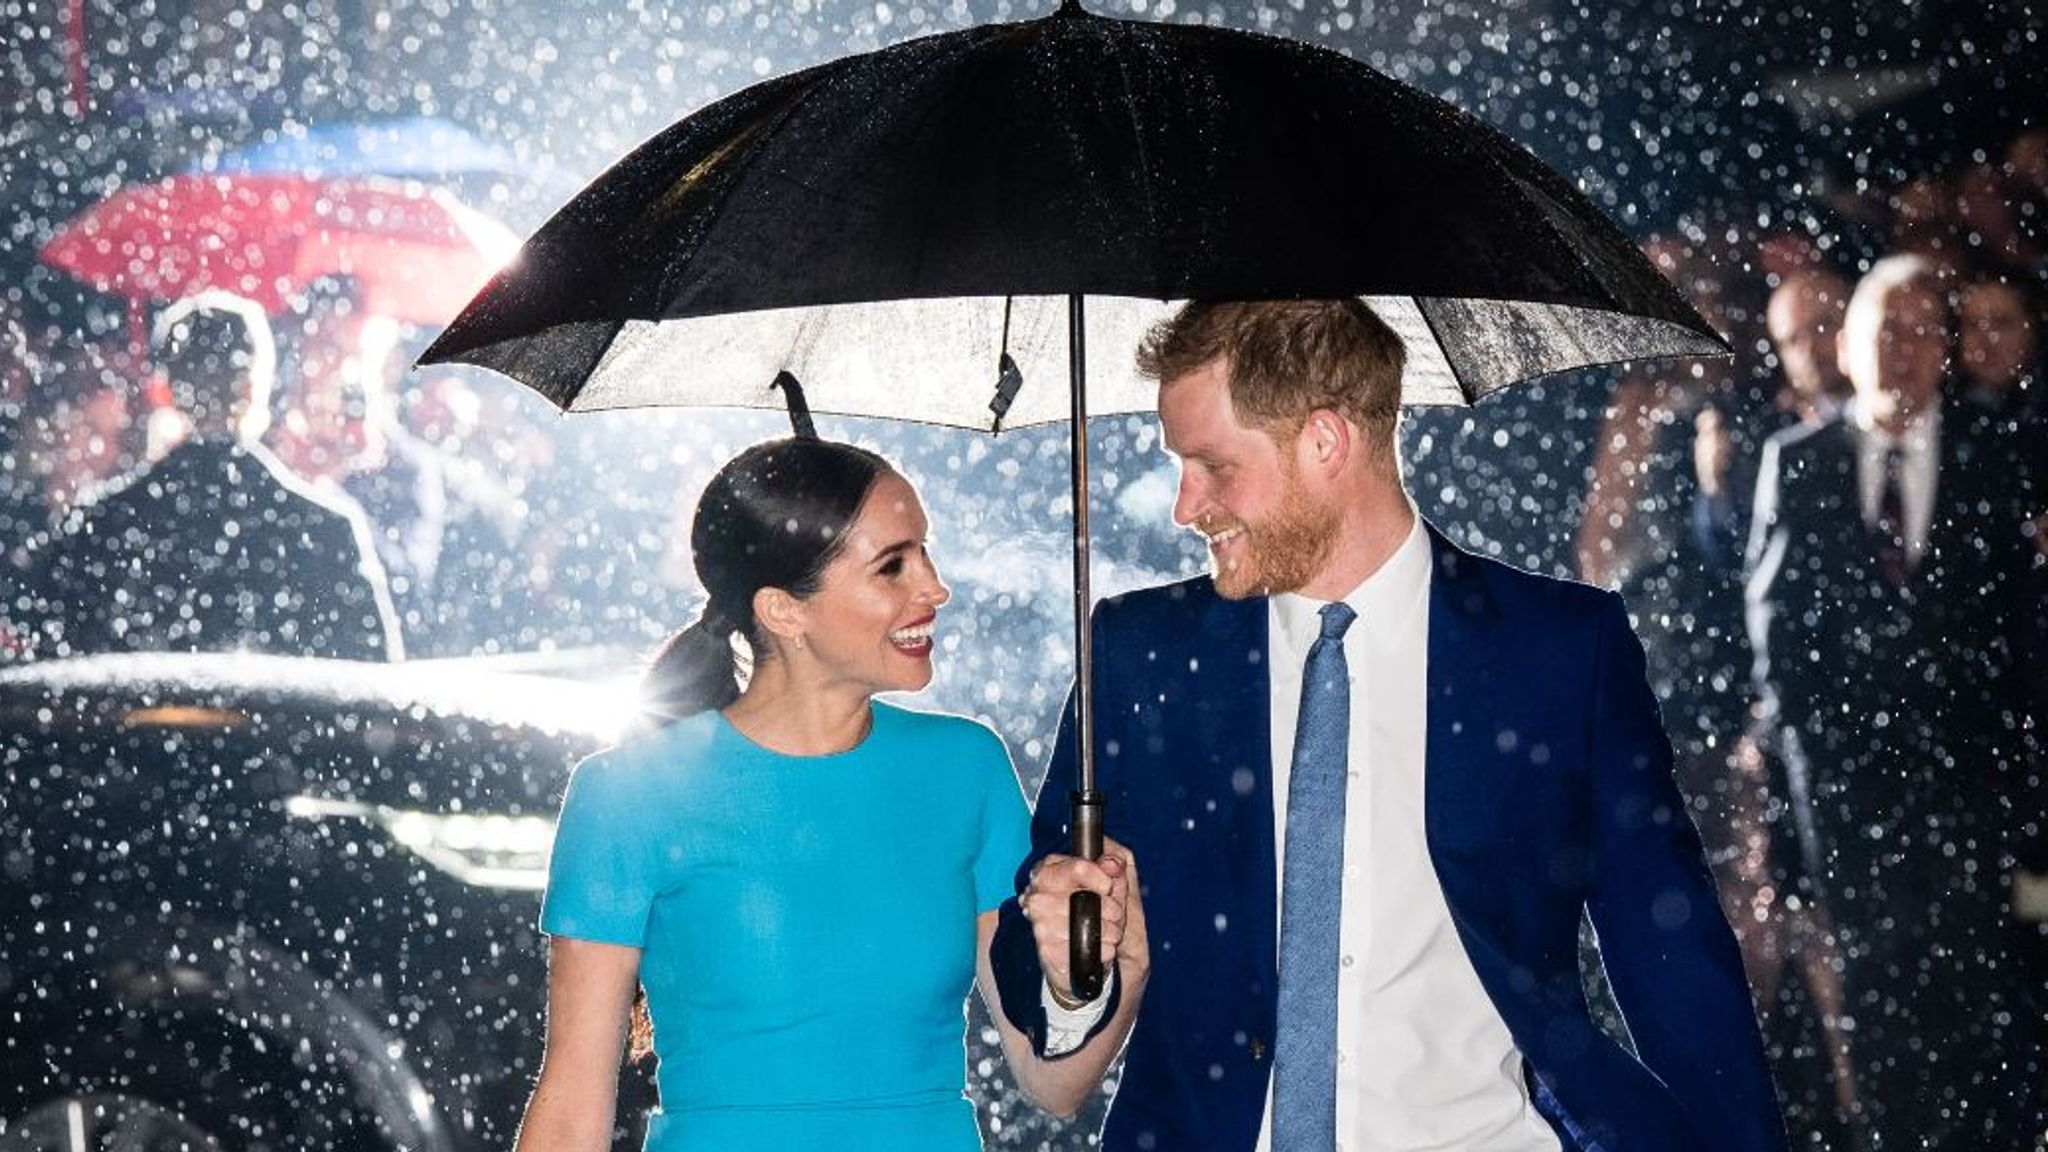 Prince Harry and the Duchess of Sussex attend The Endeavour Fund Awards in London earlier this year in March (Pic: Samir Hussein/WireImage)